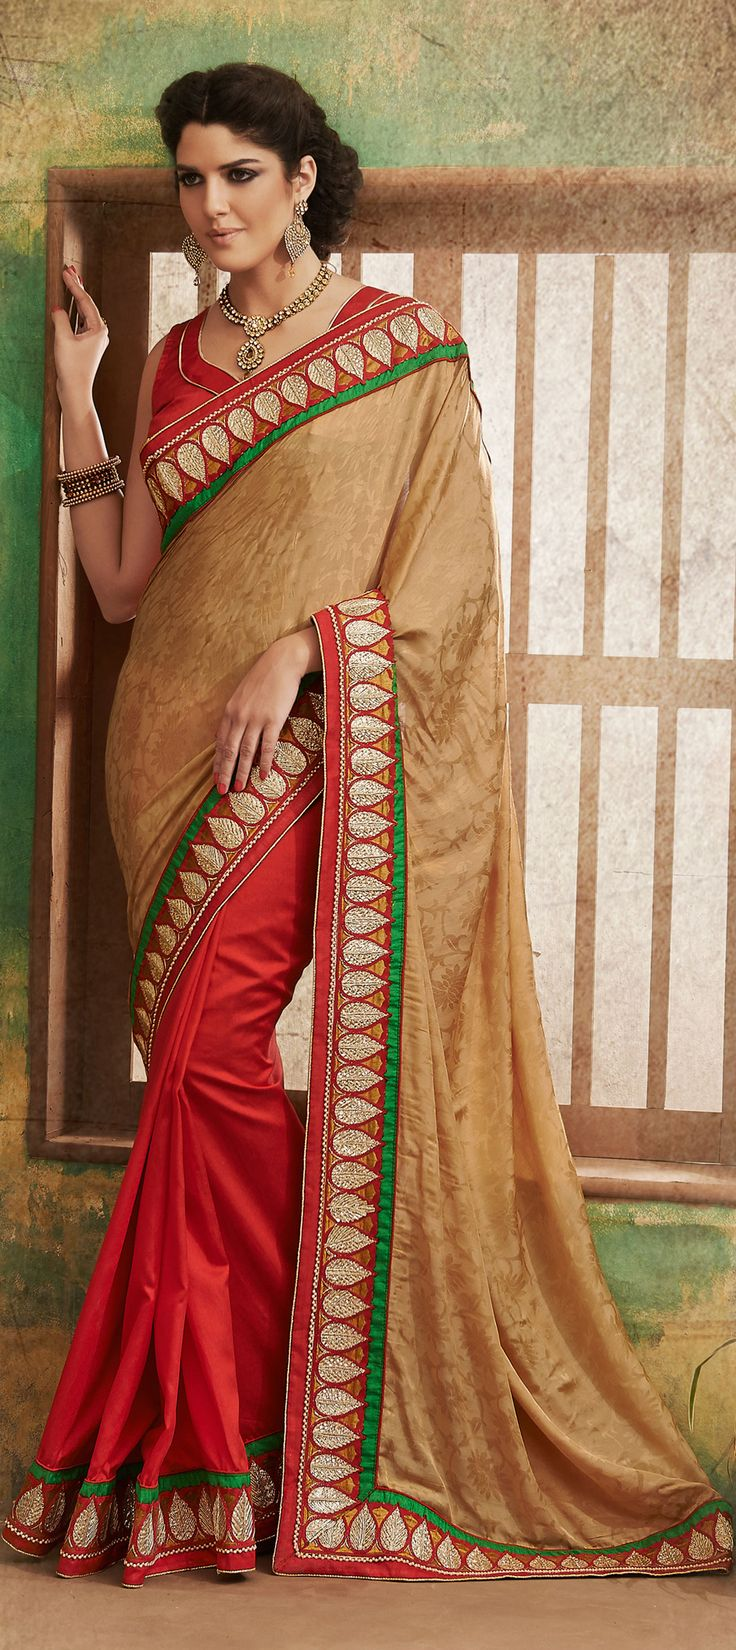 131778: Red and Maroon, Beige and Brown color family Saree with matching unstitched blouse.